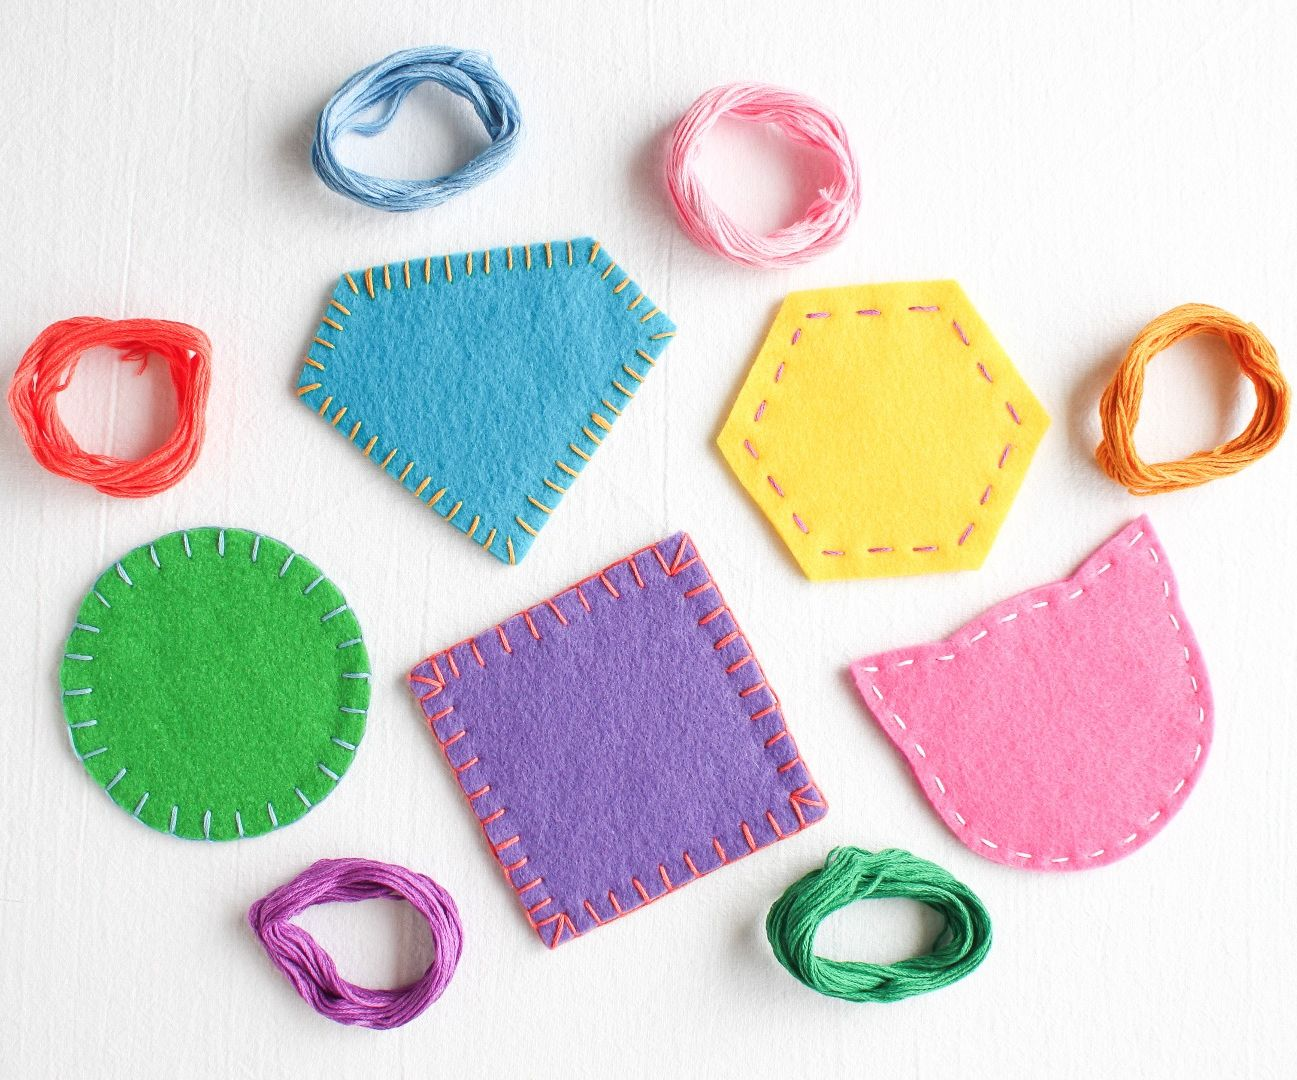 Felt Coasters: Introduction and Materials